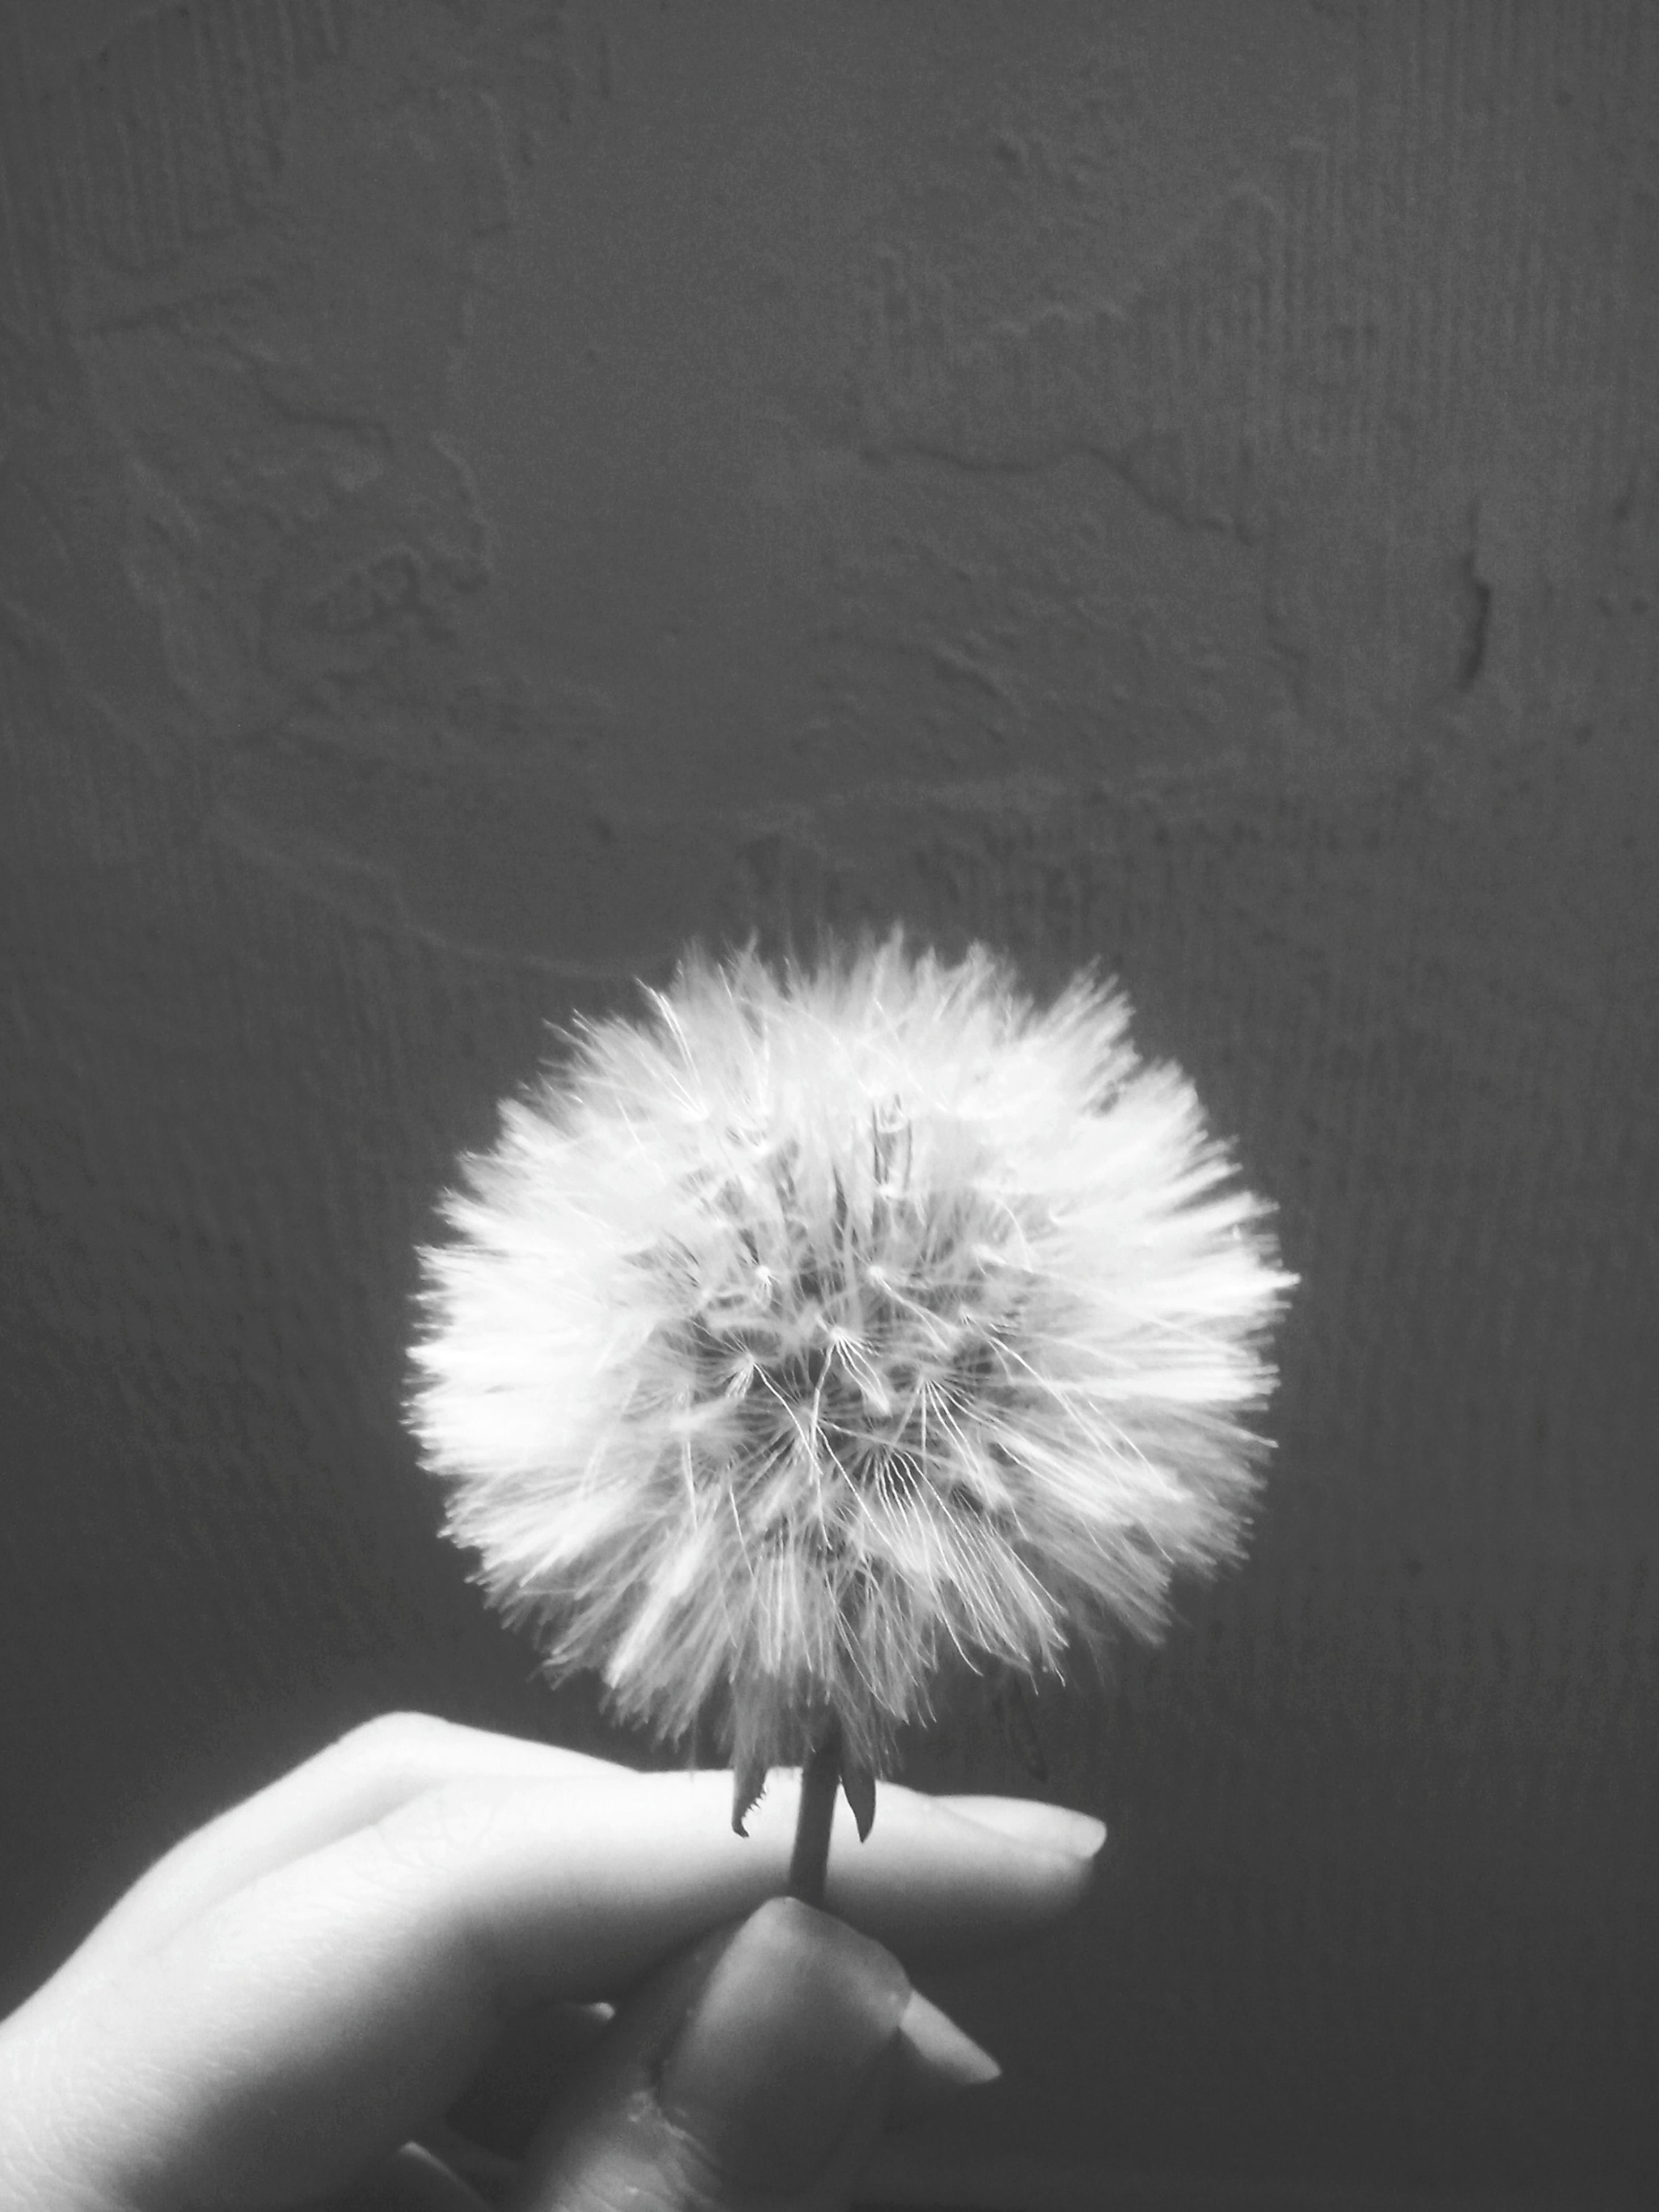 person, holding, lifestyles, part of, unrecognizable person, personal perspective, cropped, leisure activity, indoors, human finger, dandelion, close-up, flower, white color, high angle view, fragility